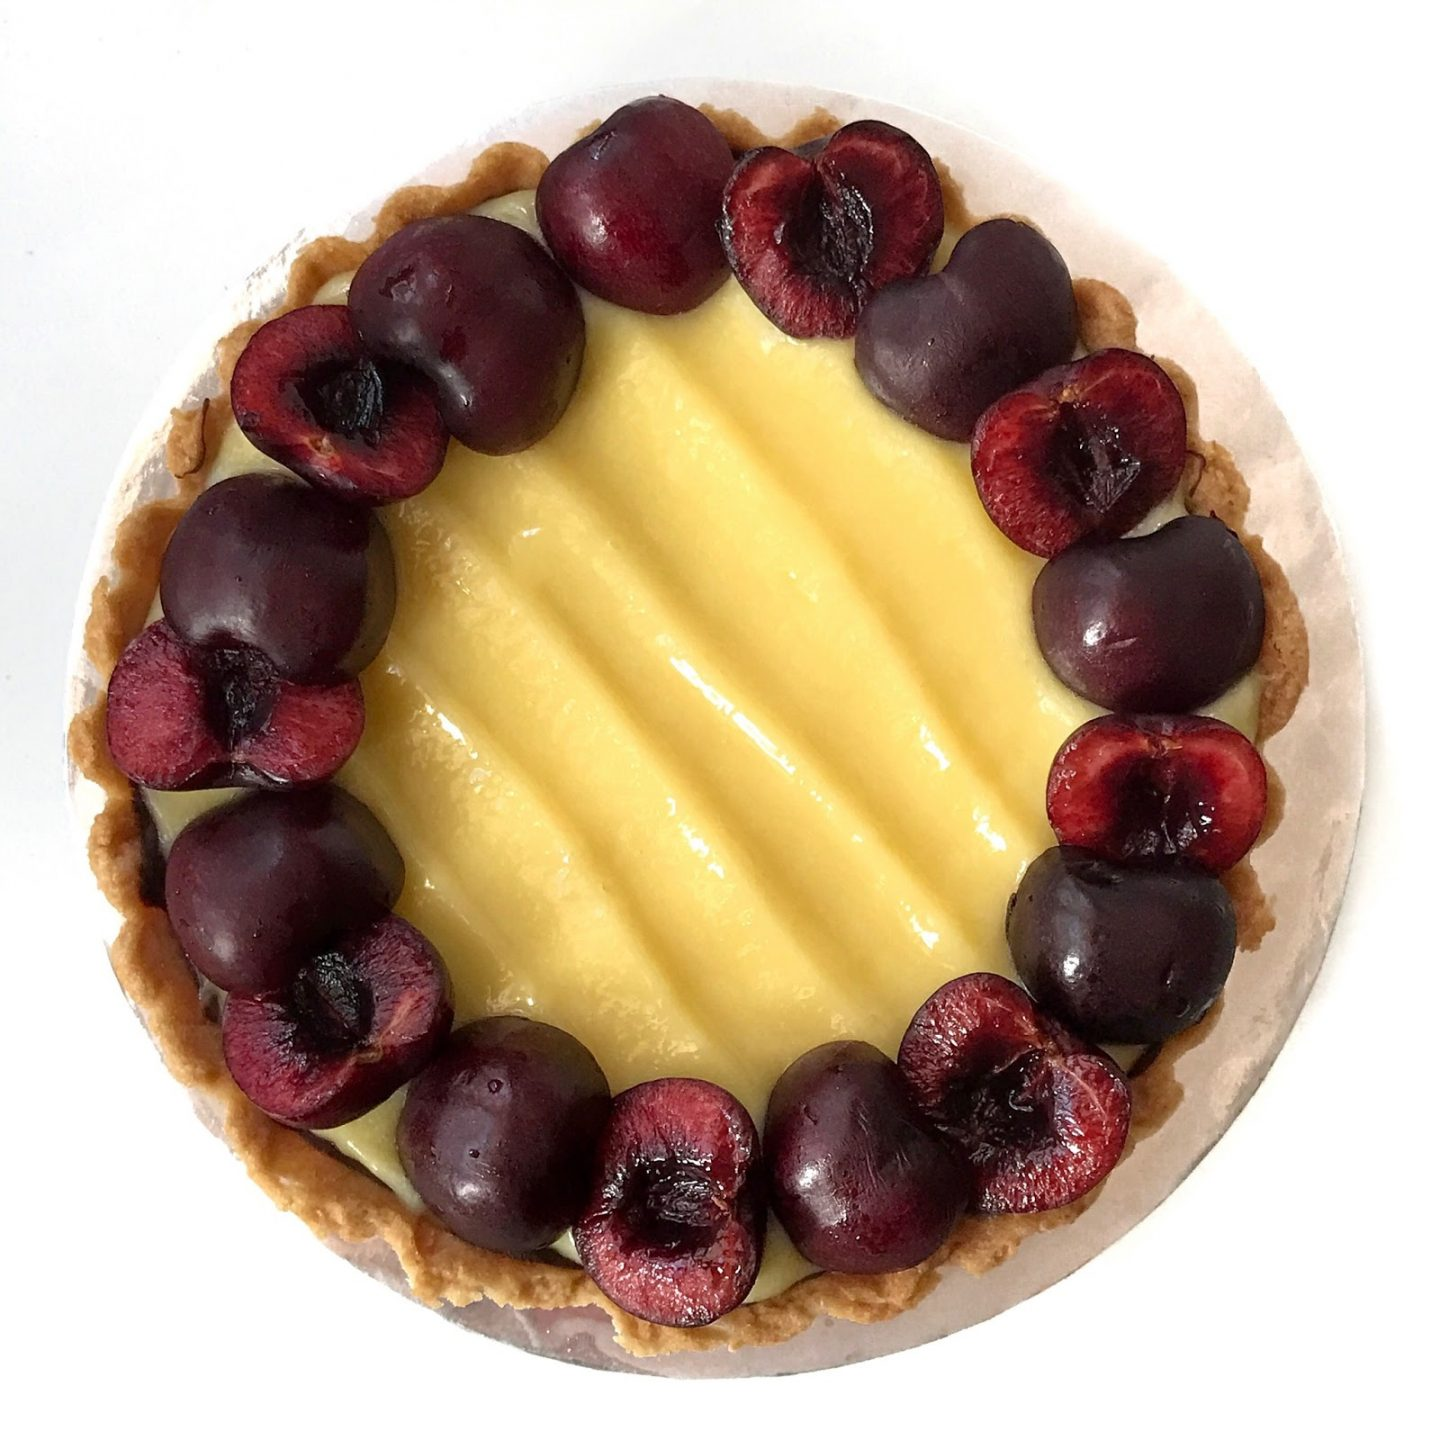 Lemon Curd Tart with cherries